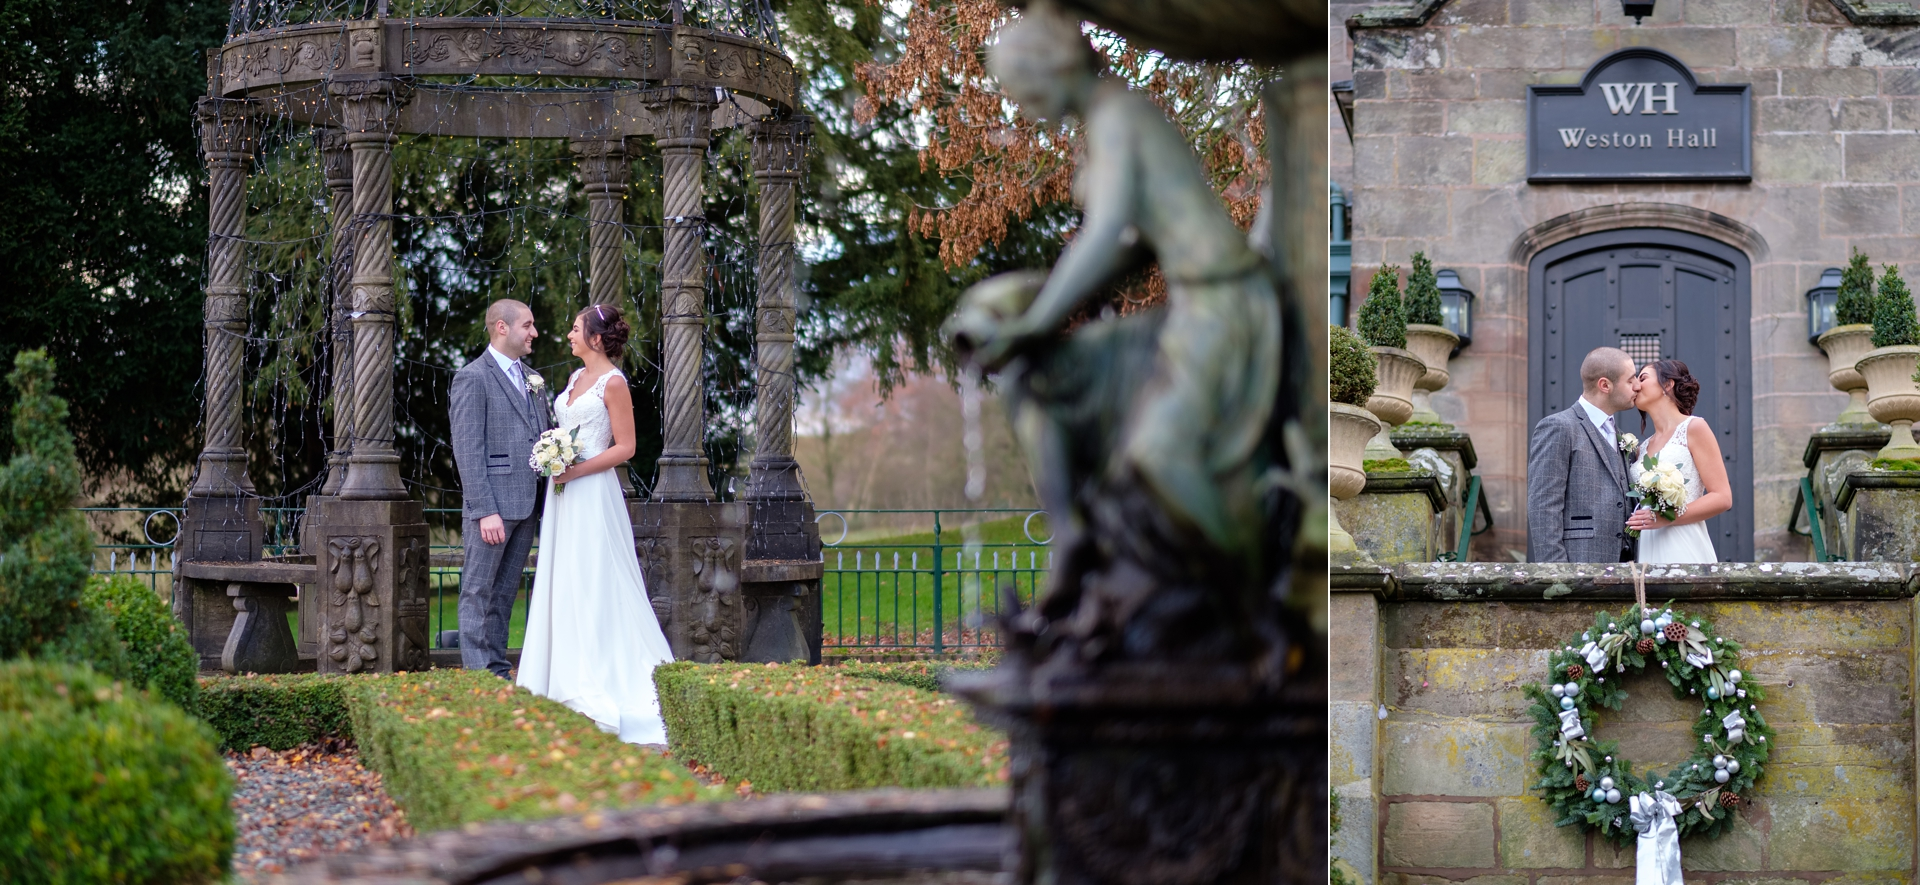 weston hall weddings photo 14.jpg